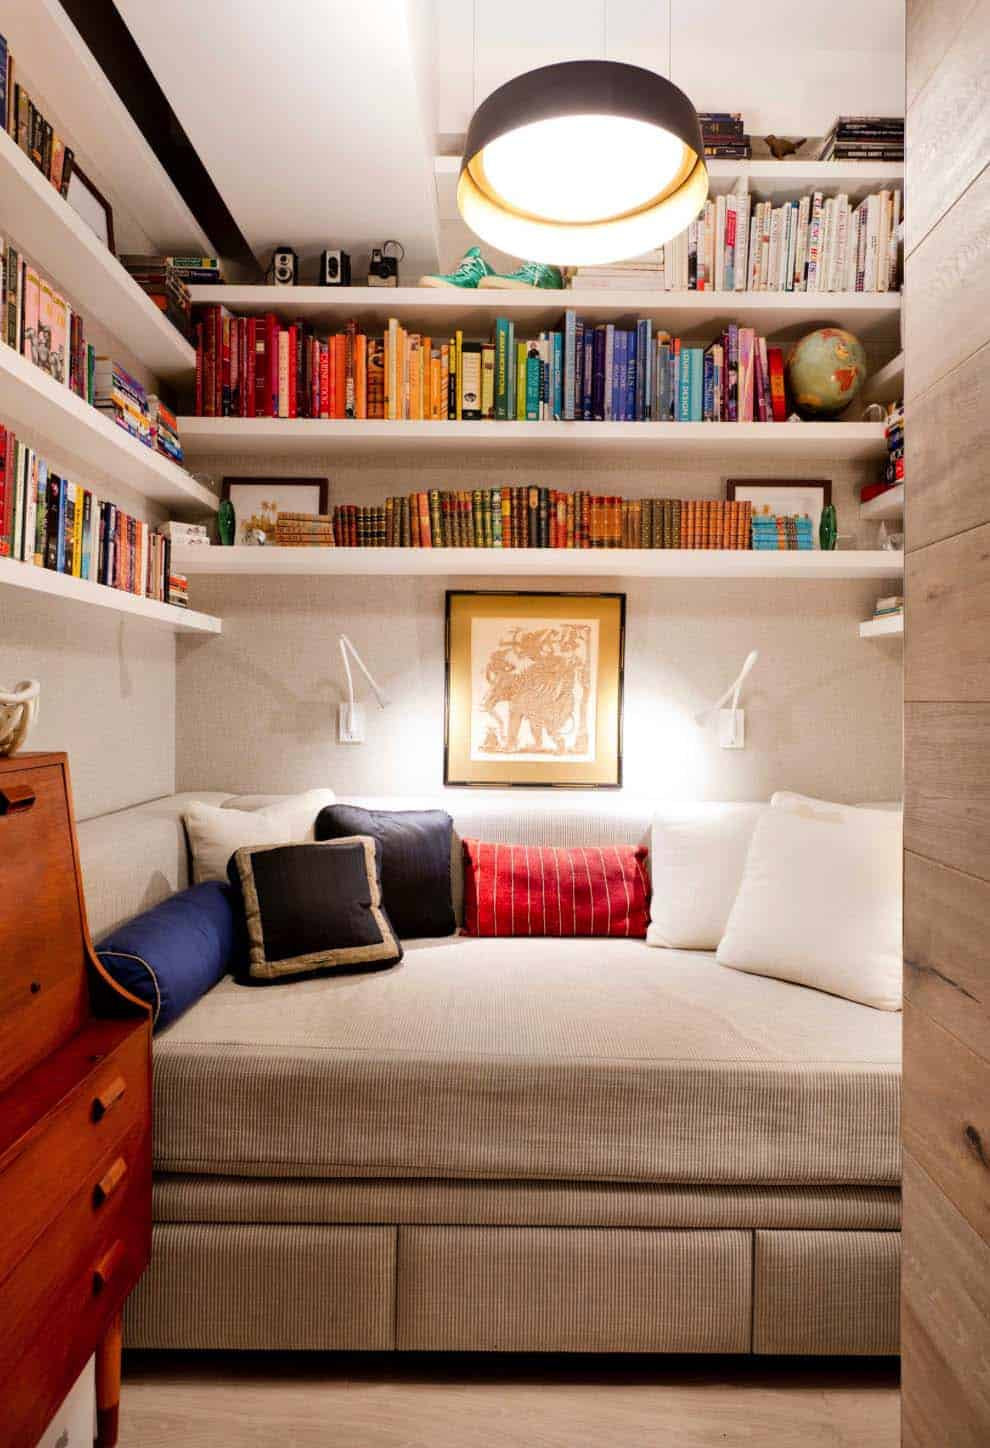 Cozy Reading Nooks For Lounging-28-1 Kindesign